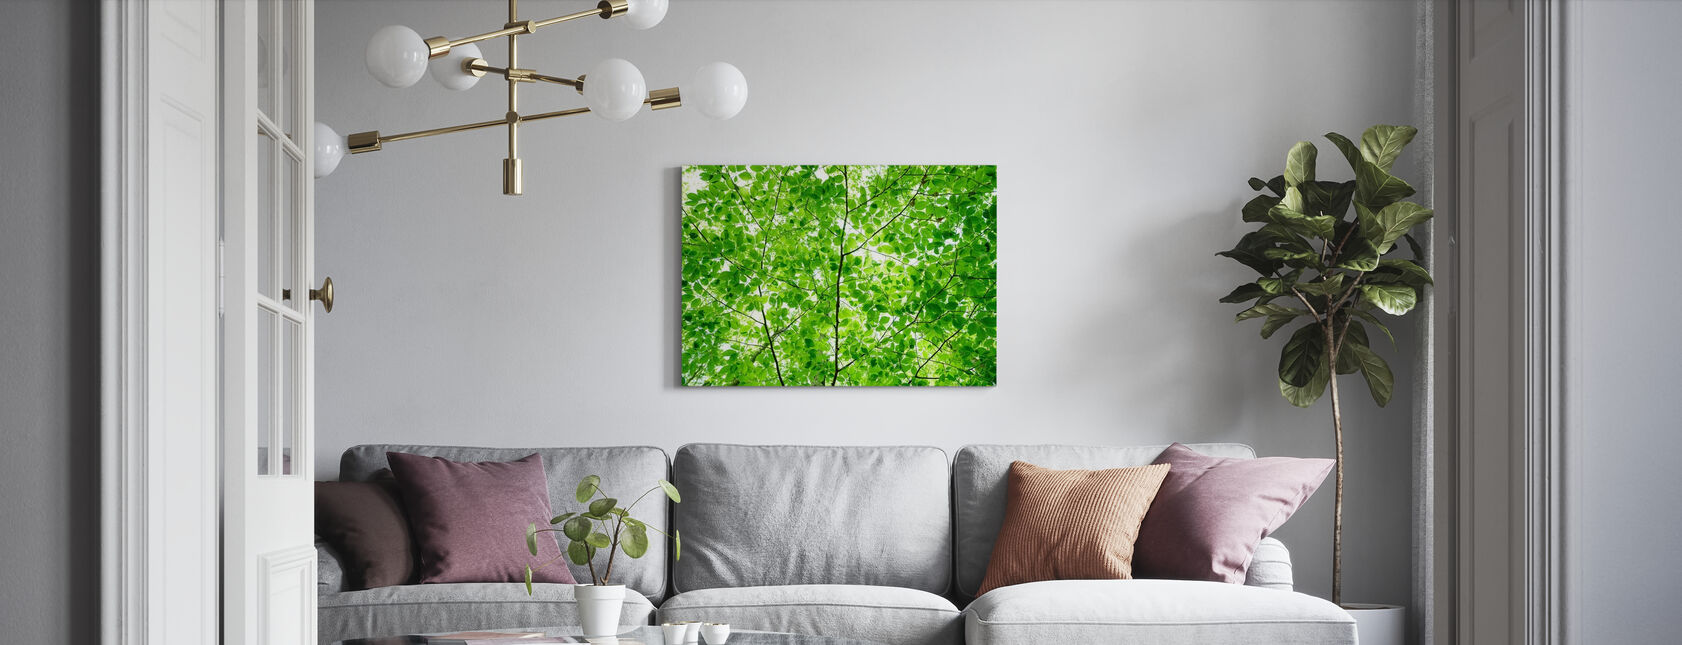 Wall of Fresh Leaves - Canvas print - Living Room